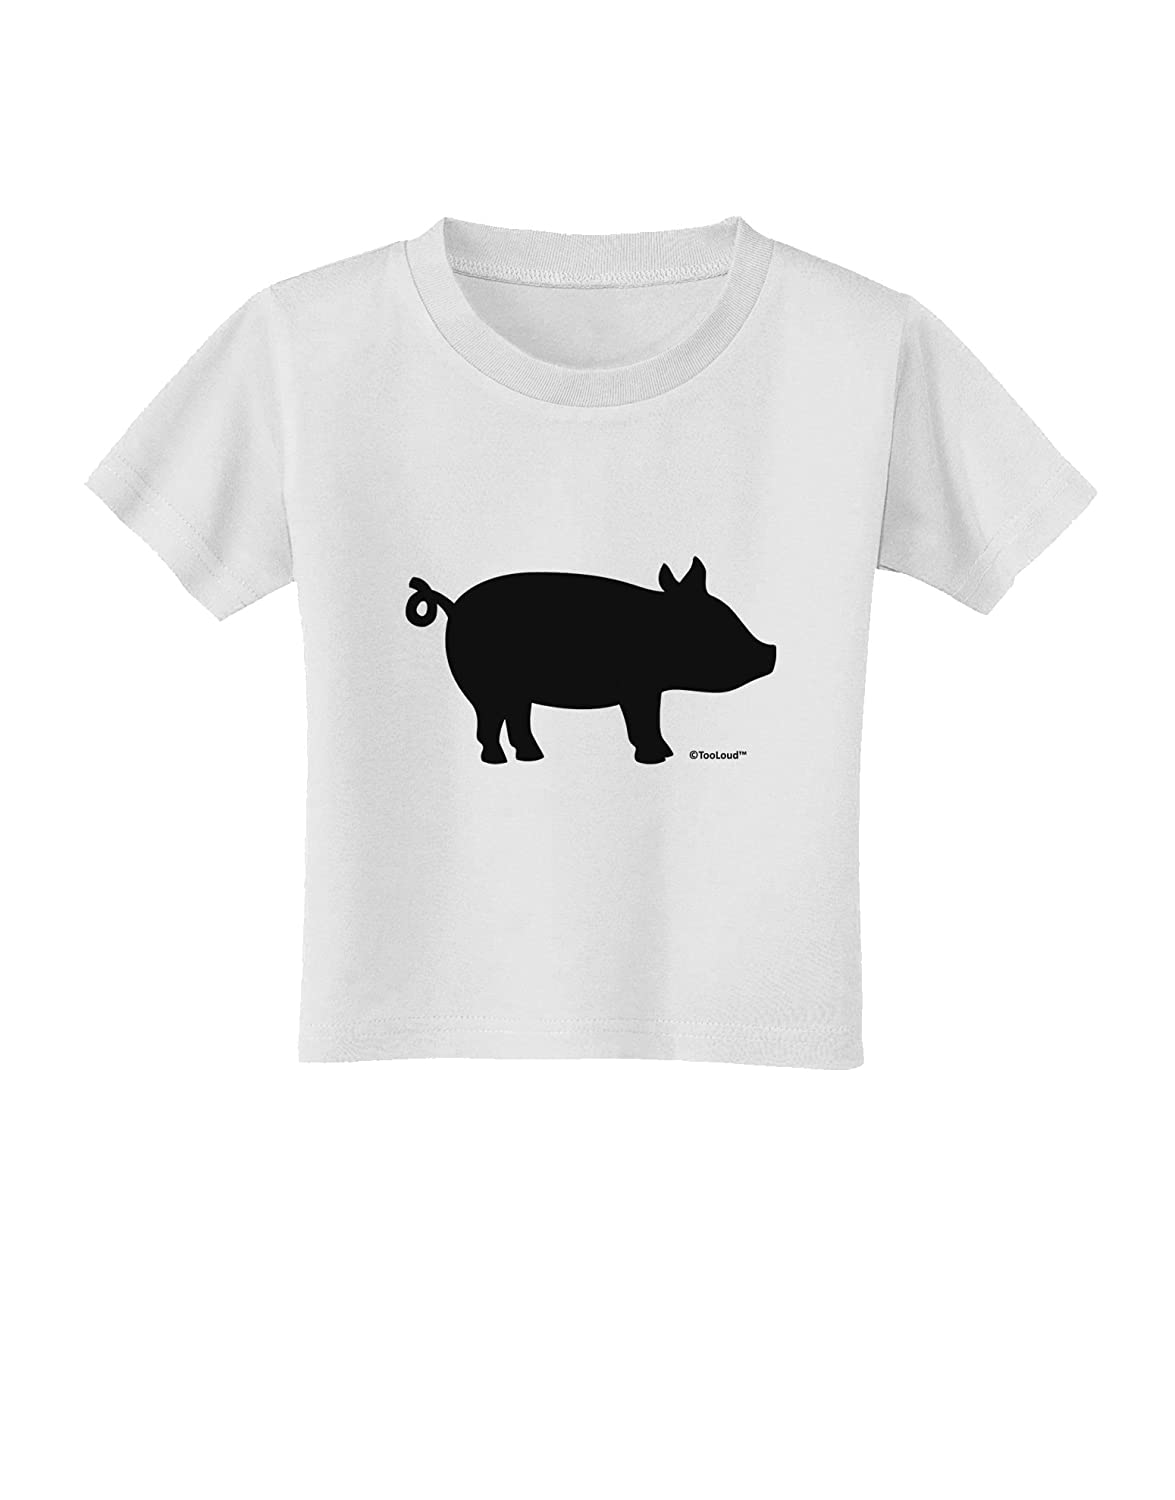 TooLoud Pig Silhouette Design Toddler T-Shirt